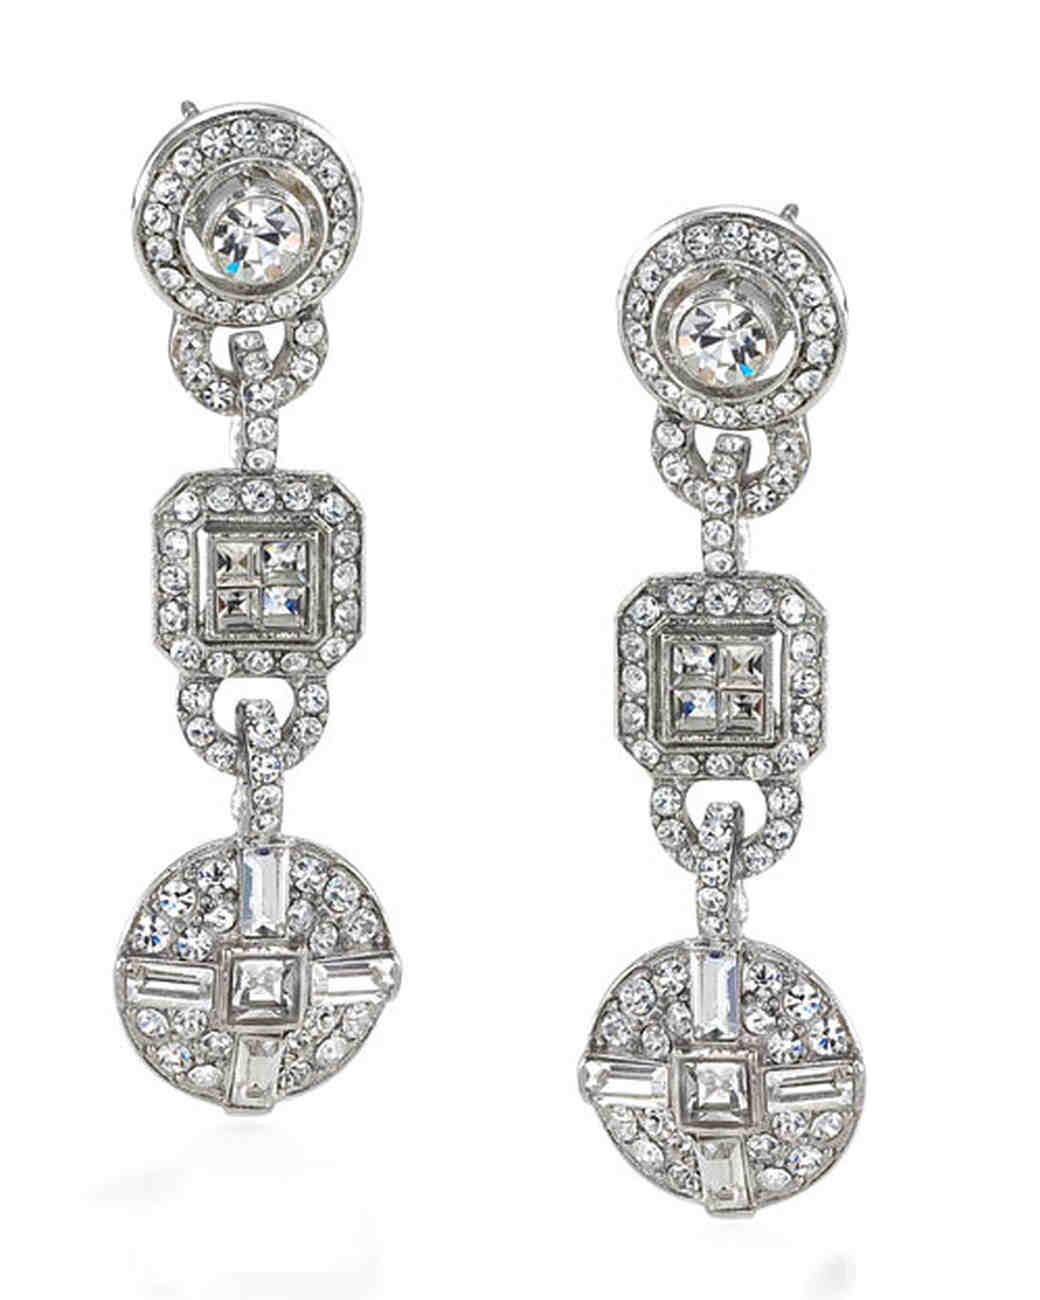 every via earrings detail com to your wedding last how theeld day choose jewelry